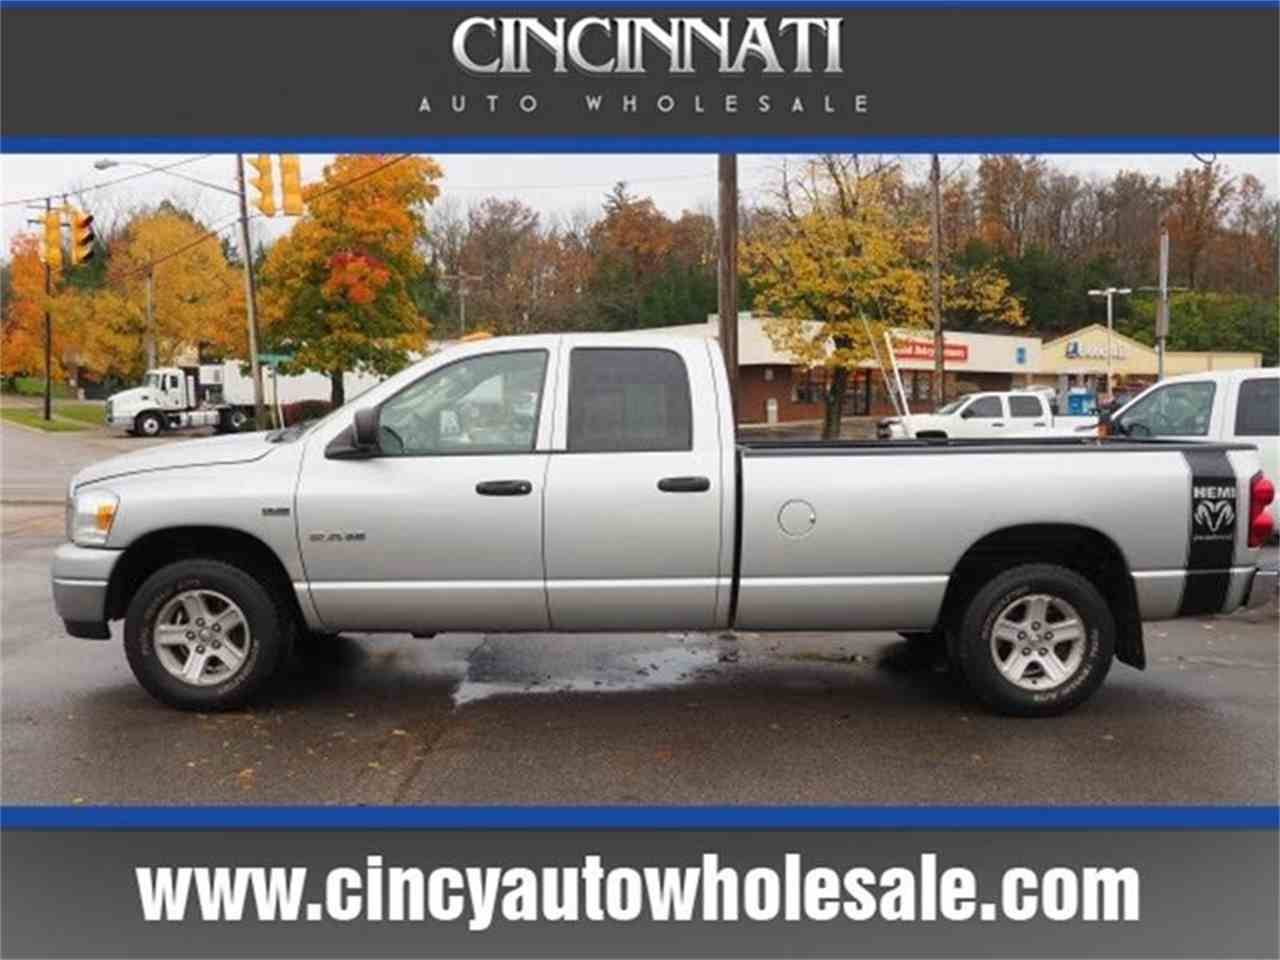 Large Picture of 2008 Ram 1500 located in Ohio - MBMR